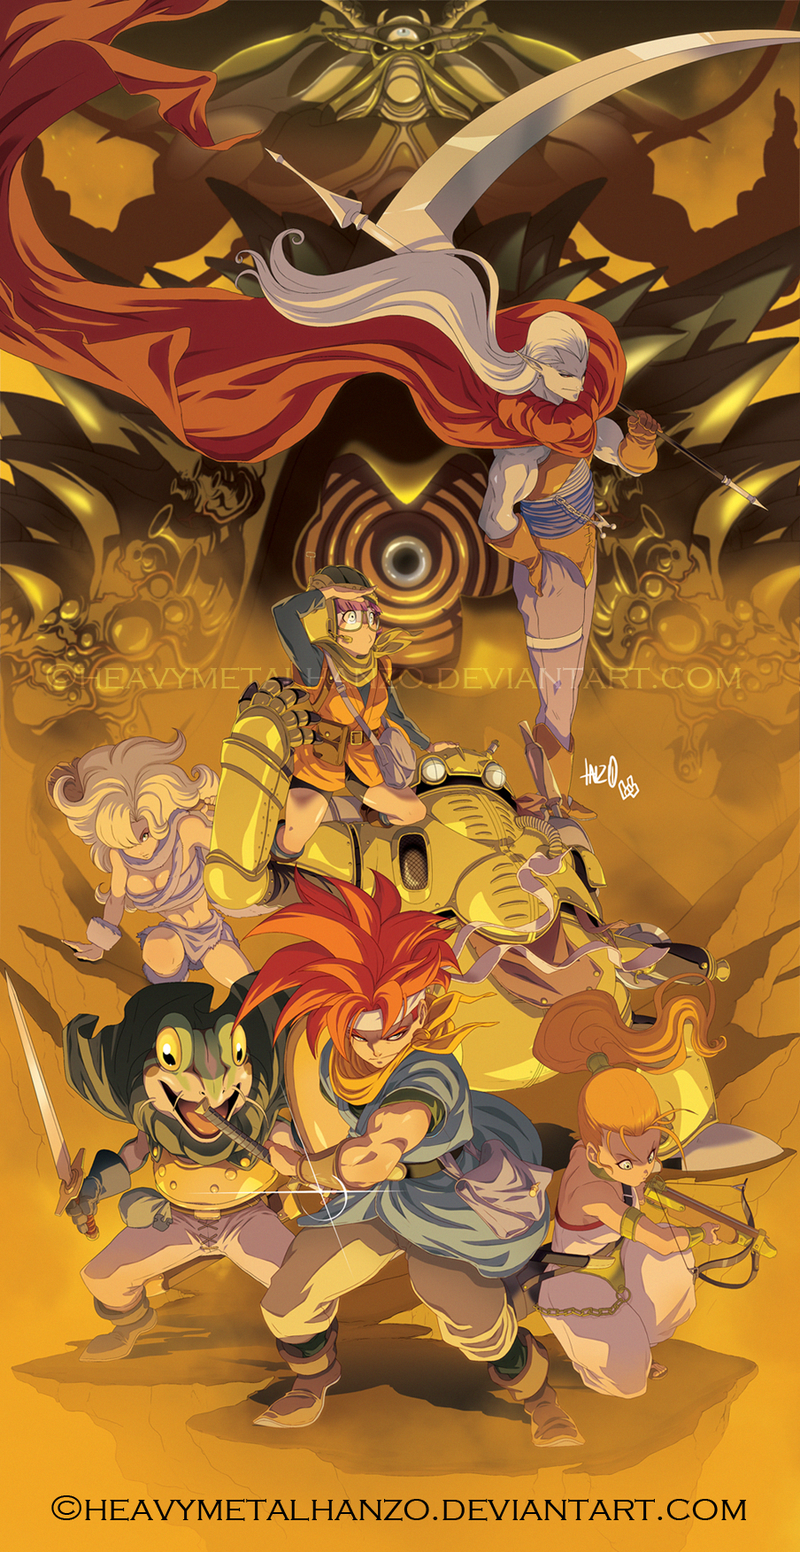 Chrono Trigger Fan Art In An Anime Style Chrono Trigger Anime Game Character